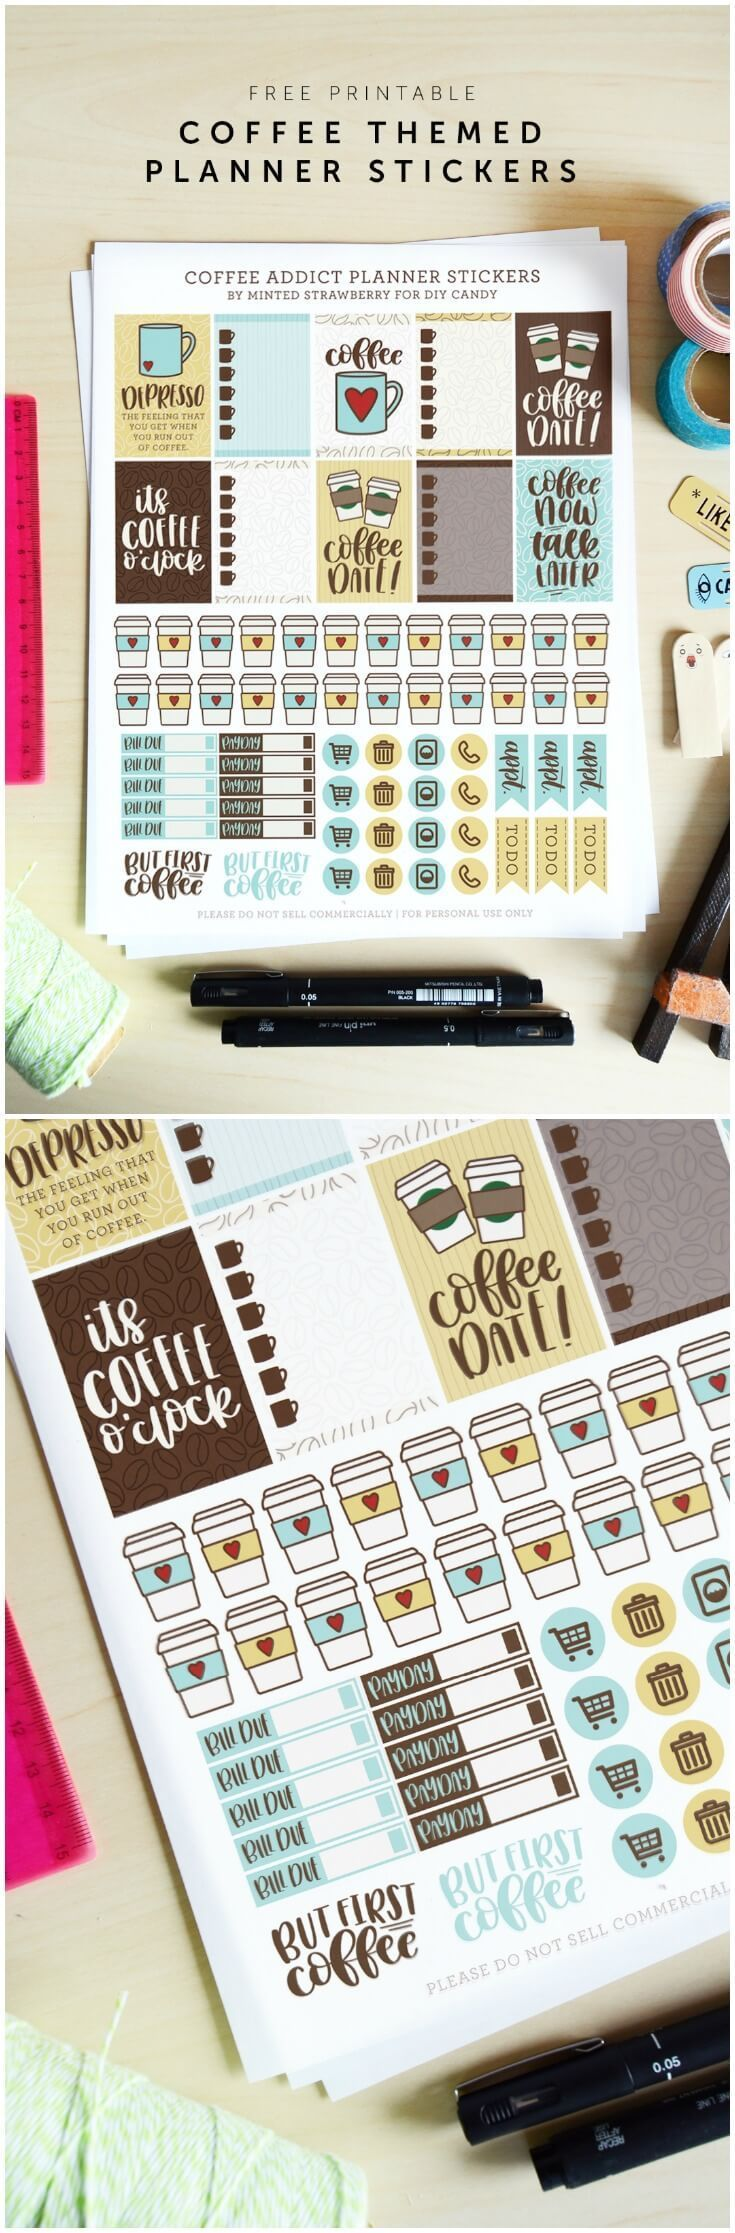 Grab some free printable planner stickers with a coffee theme! Perfect for Happy Planner, Day Designer, bullet journal, and more. via @diy_candy